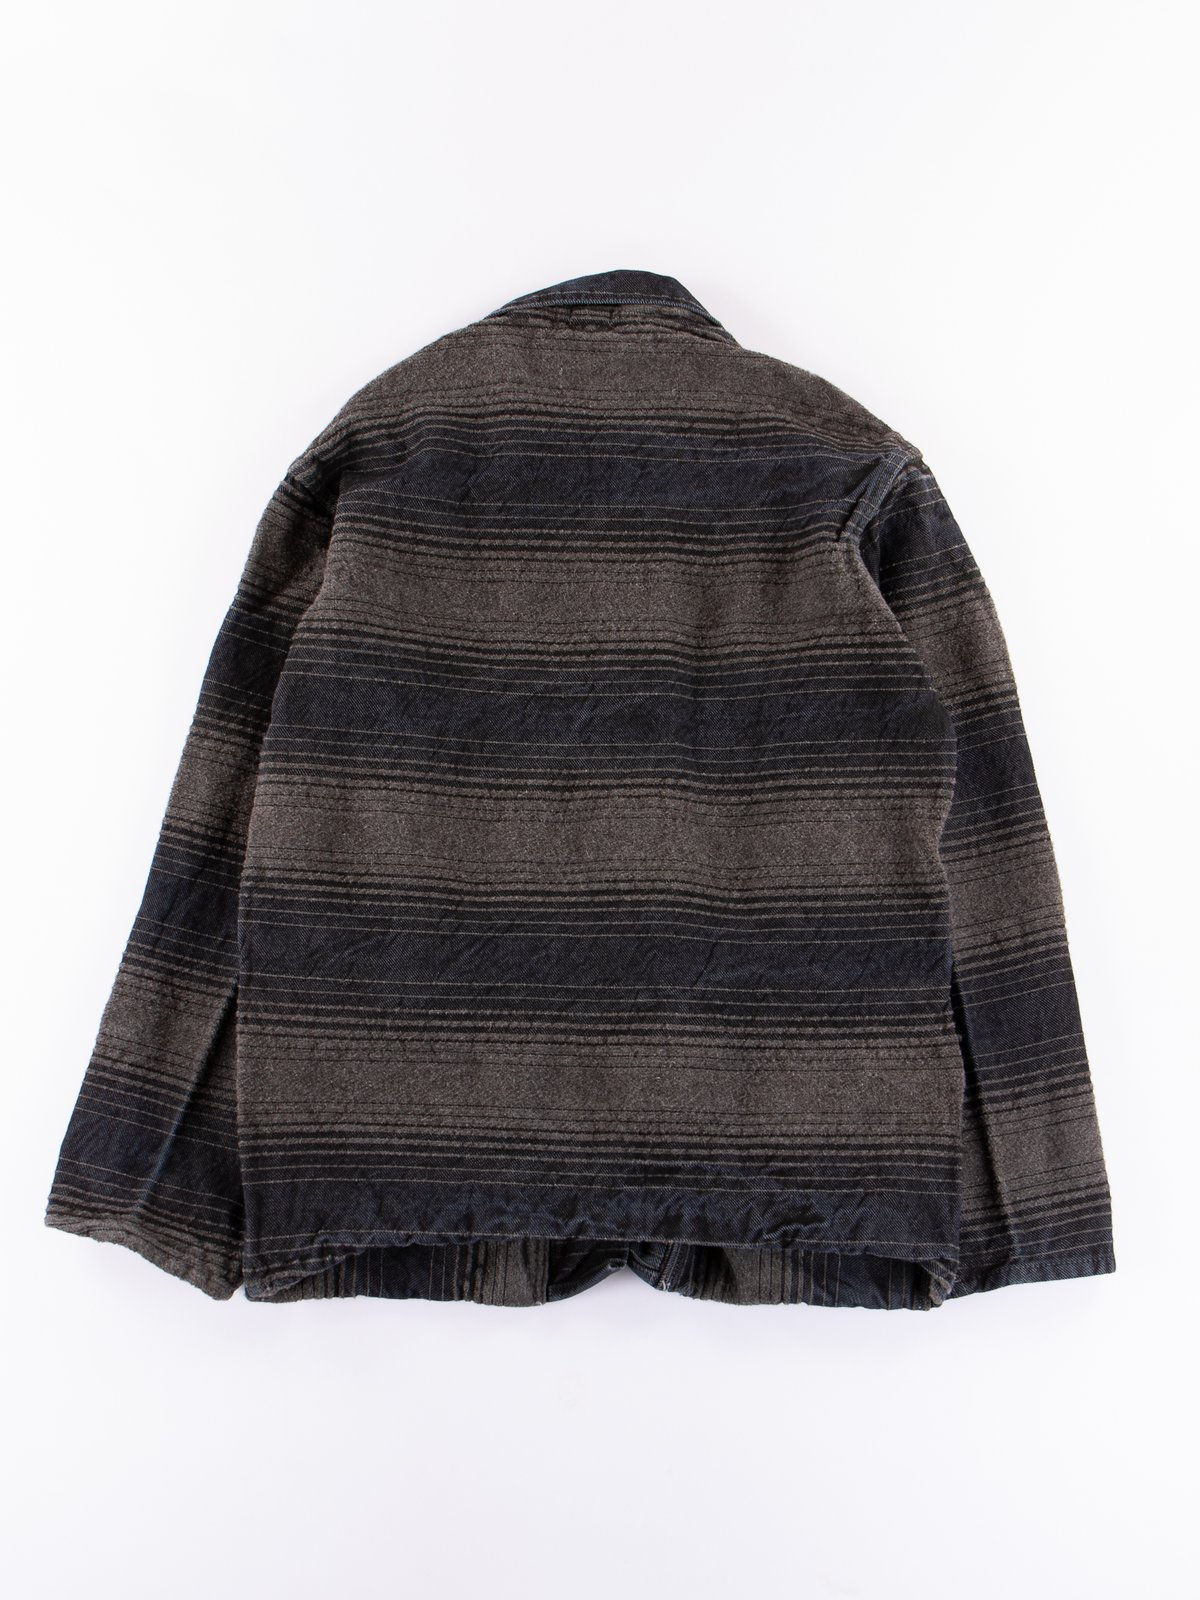 Indian Black Dye Doppler Stripe Collared Shepherd's Coat - Image 7